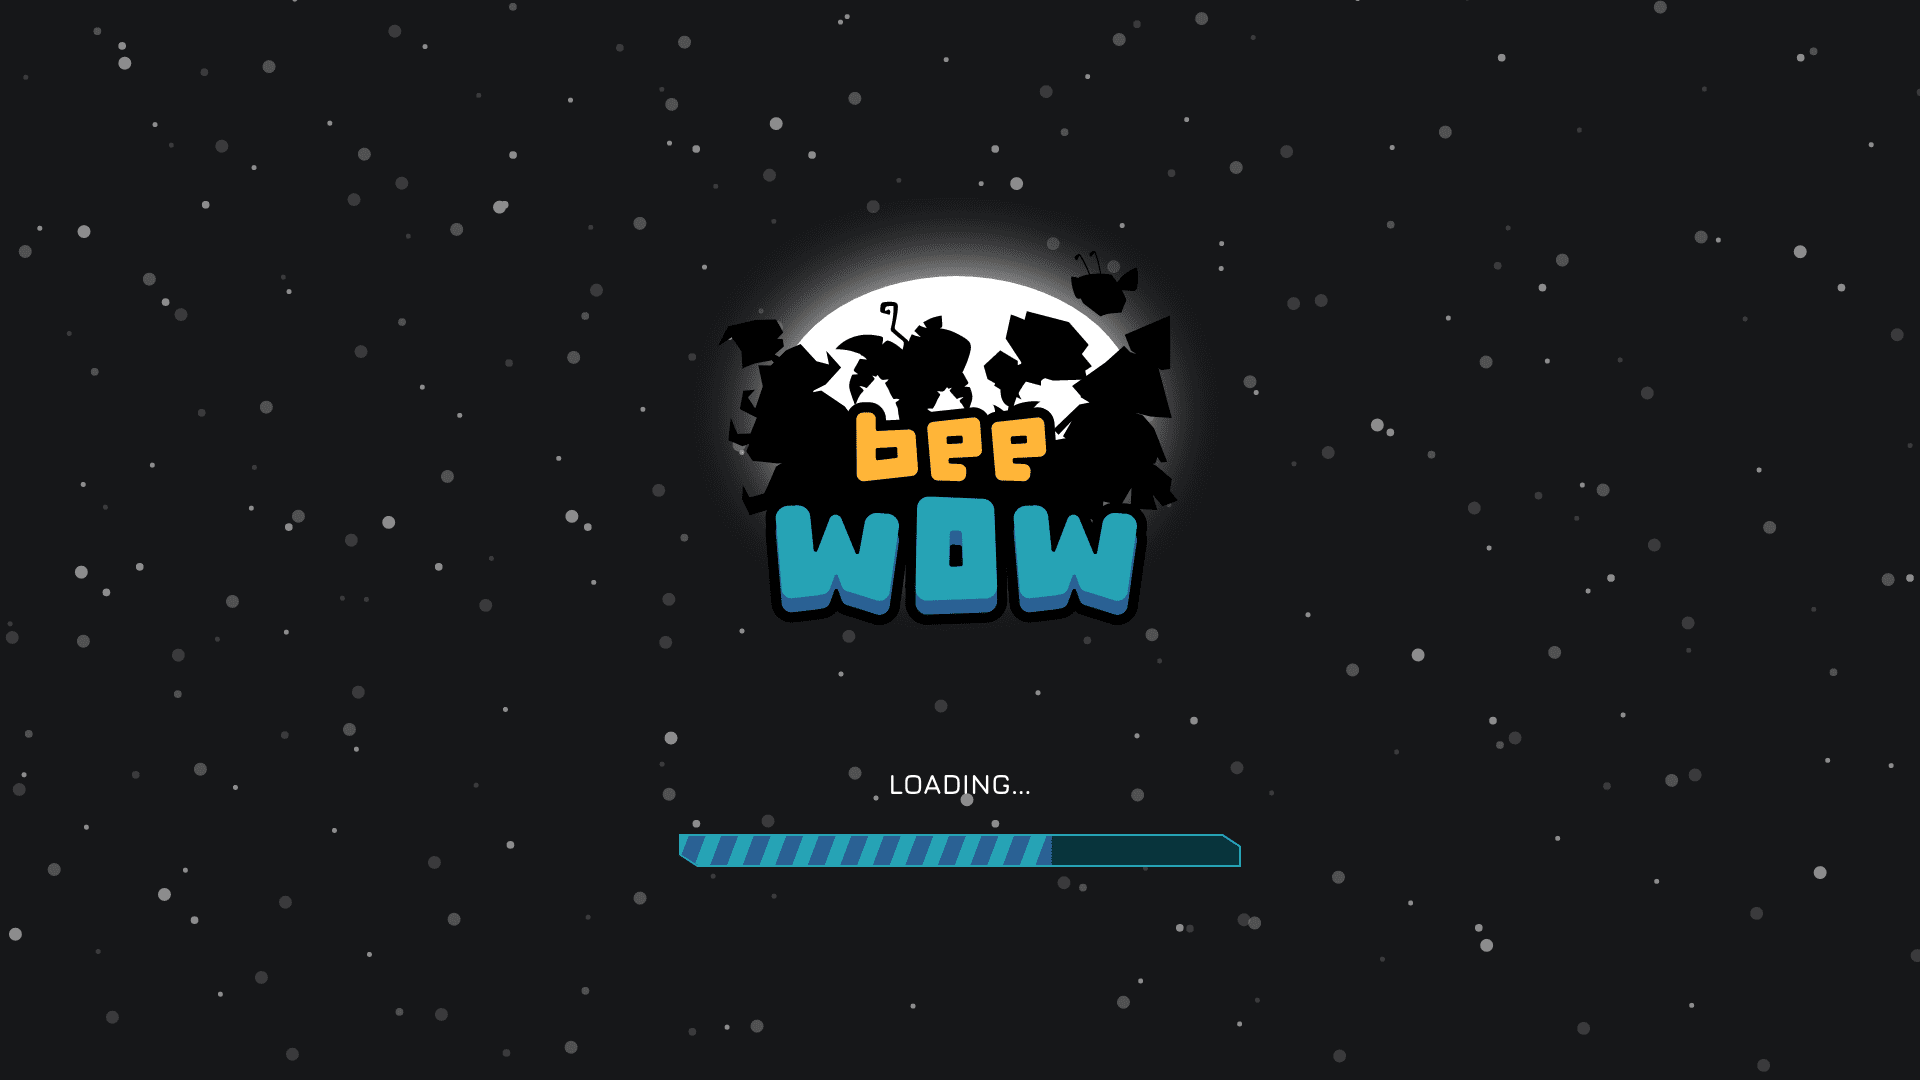 Bee Wow UI Design